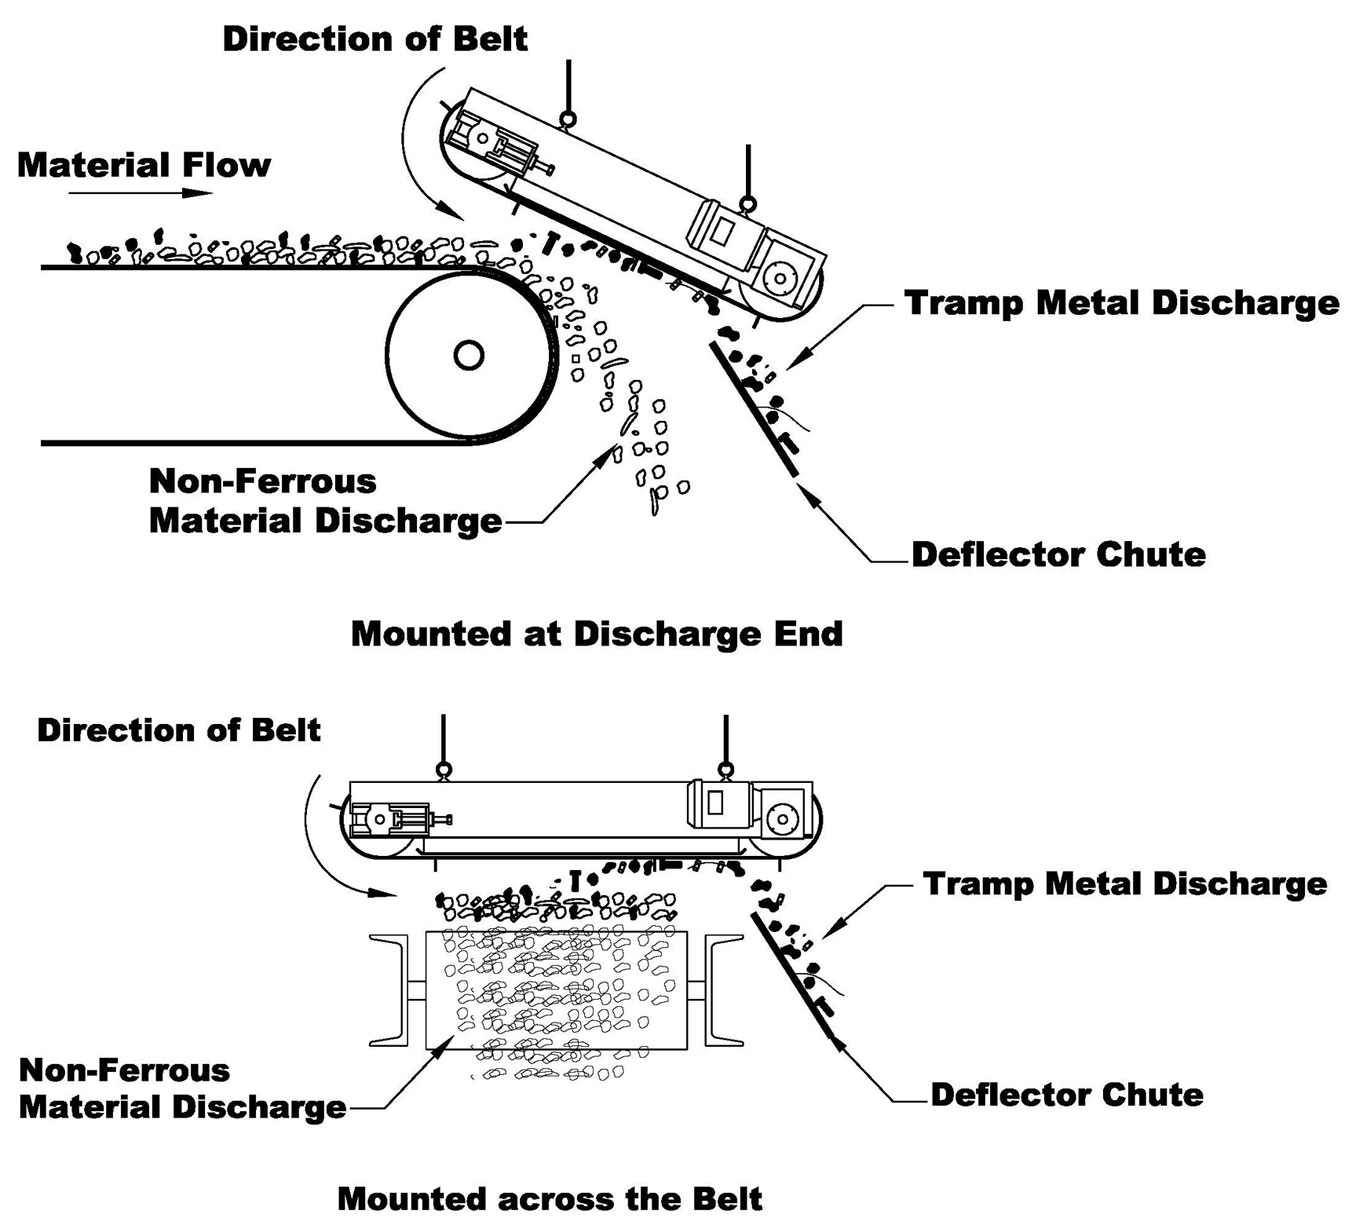 hight resolution of these powerful magnets are usually installed above conveyor belts and draw the unwanted metals upwards and away from the conveyor belt to allow for